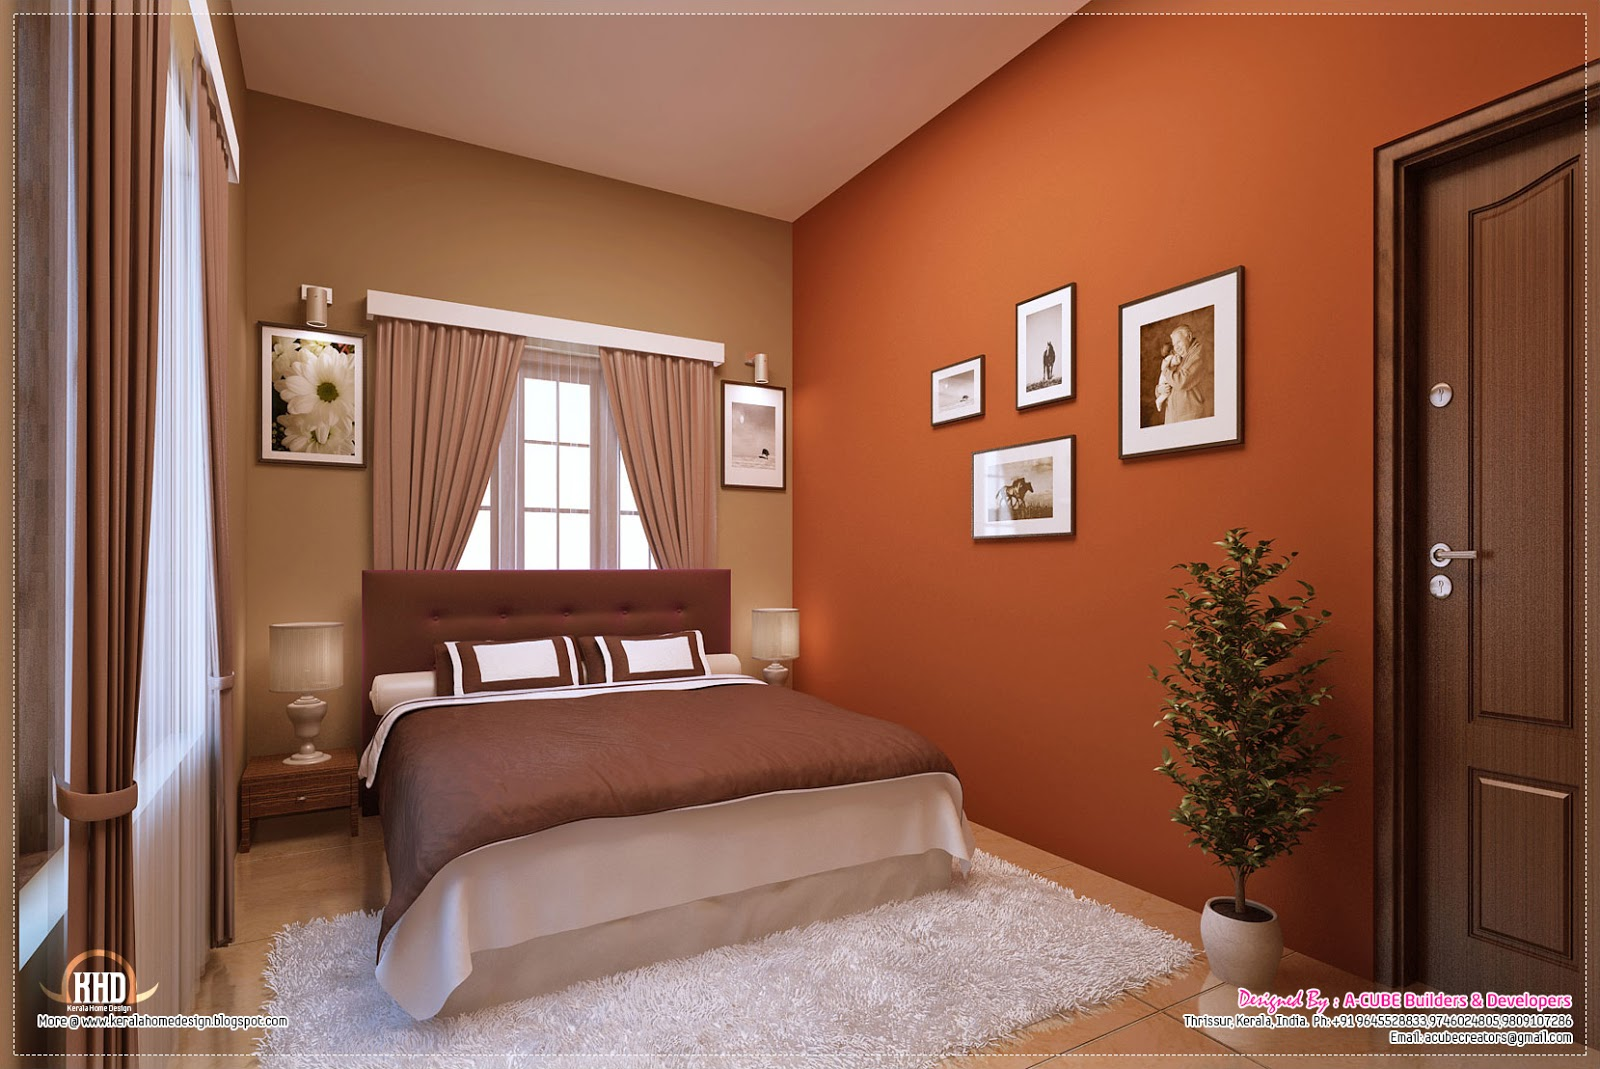 Awesome interior decoration ideas kerala home design and Low cost interior design ideas india